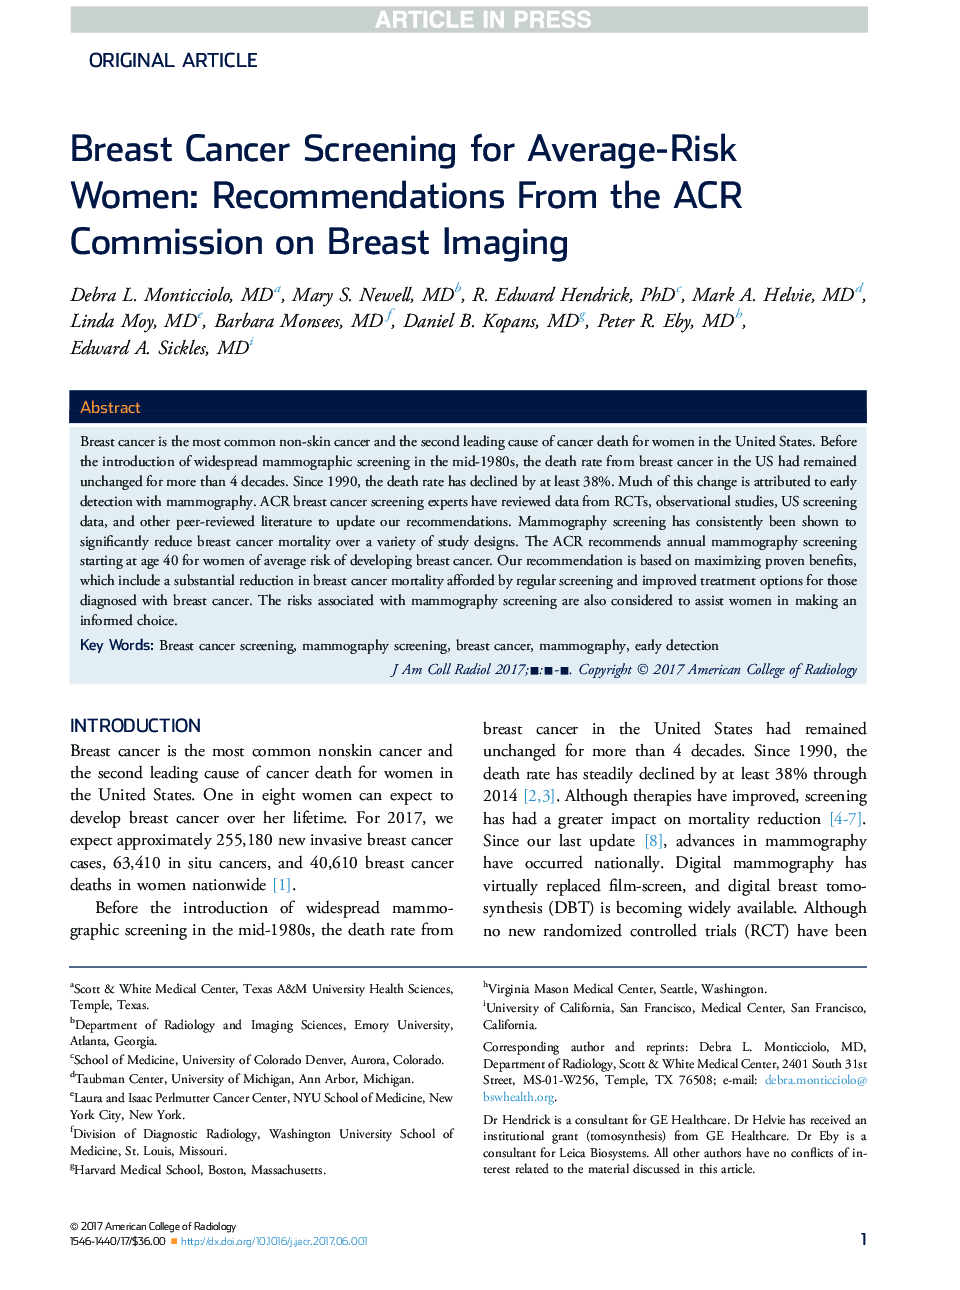 Breast Cancer Screening for Average-Risk Women: Recommendations From the ACR Commission on Breast Imaging